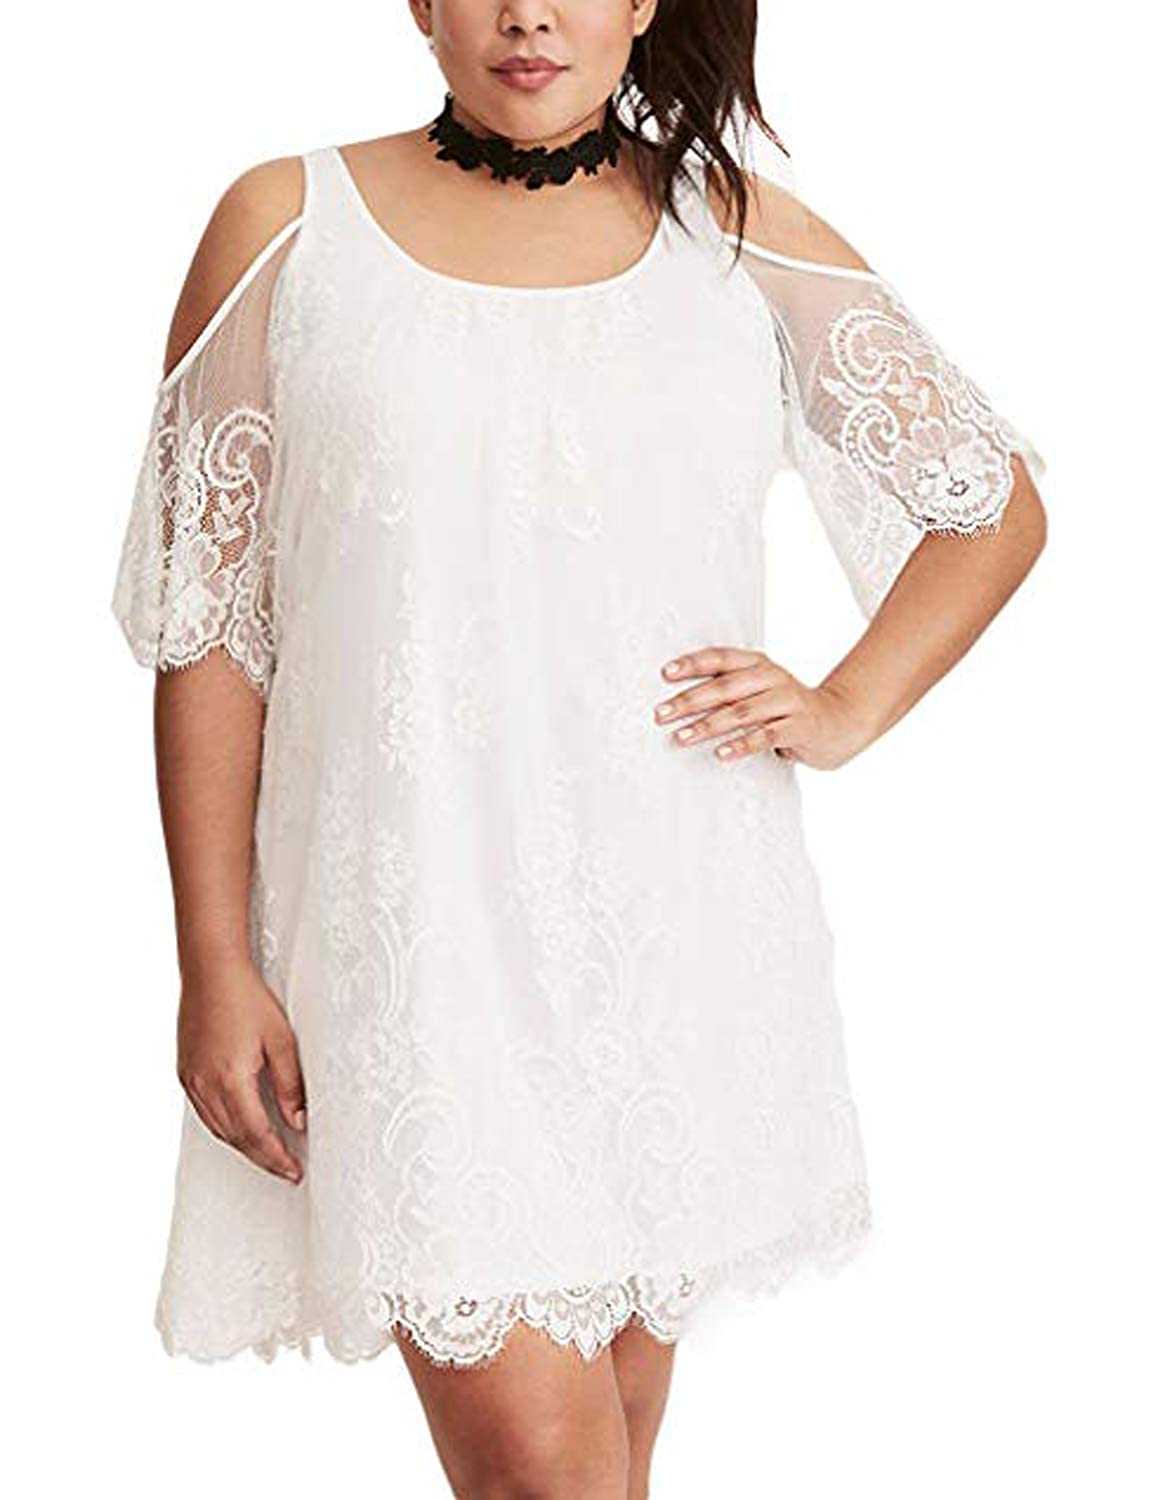 5b260caba3d The plus size dresses feature elegant lace fabric, flutter sleeves, scoop  neck and sexy cold shoulder that can reveal hints of skin